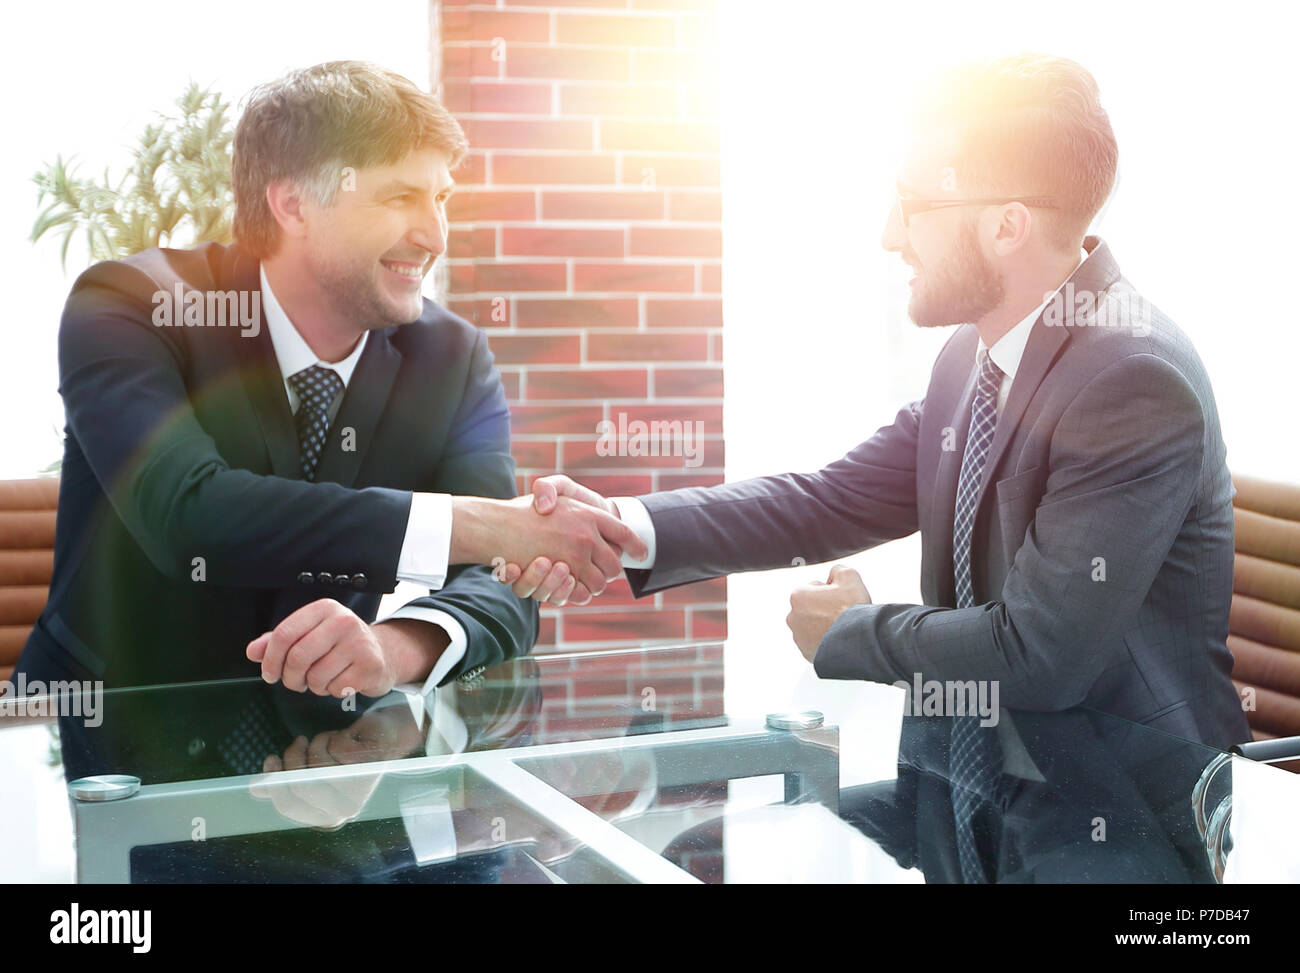 Business partners shake hands after discussing the contract - Stock Image